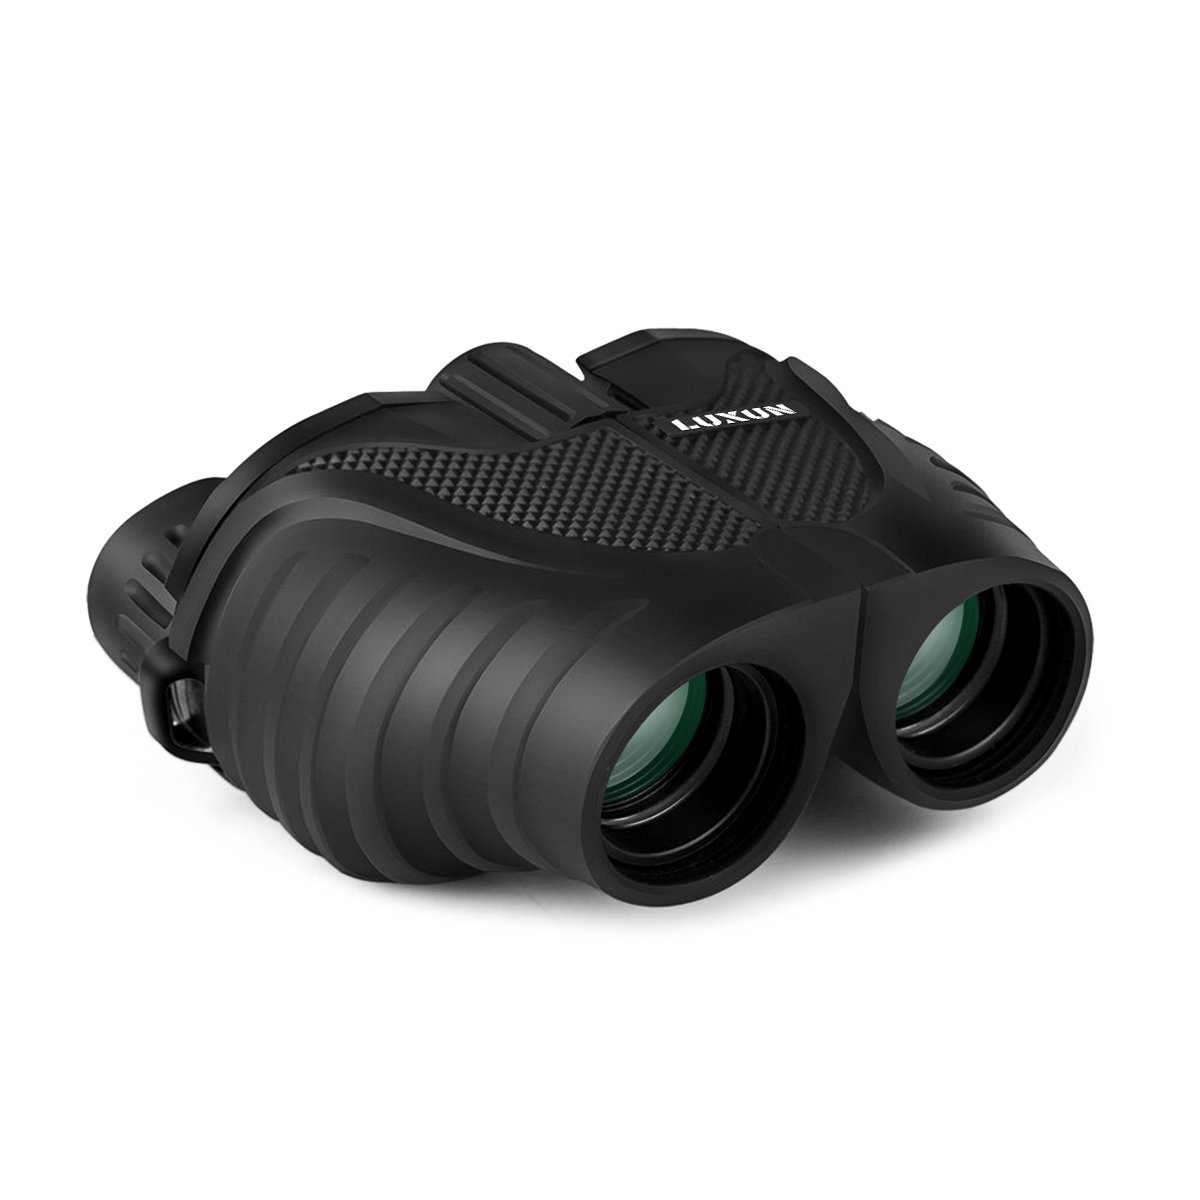 Compact Binoculars, SGODDE 8x25 Waterproof Folding High Powered Binoculars with Weak Light Night Vision,Fully Coated Lens for Outdoor Bird Watching Travelling Concert 4331882480